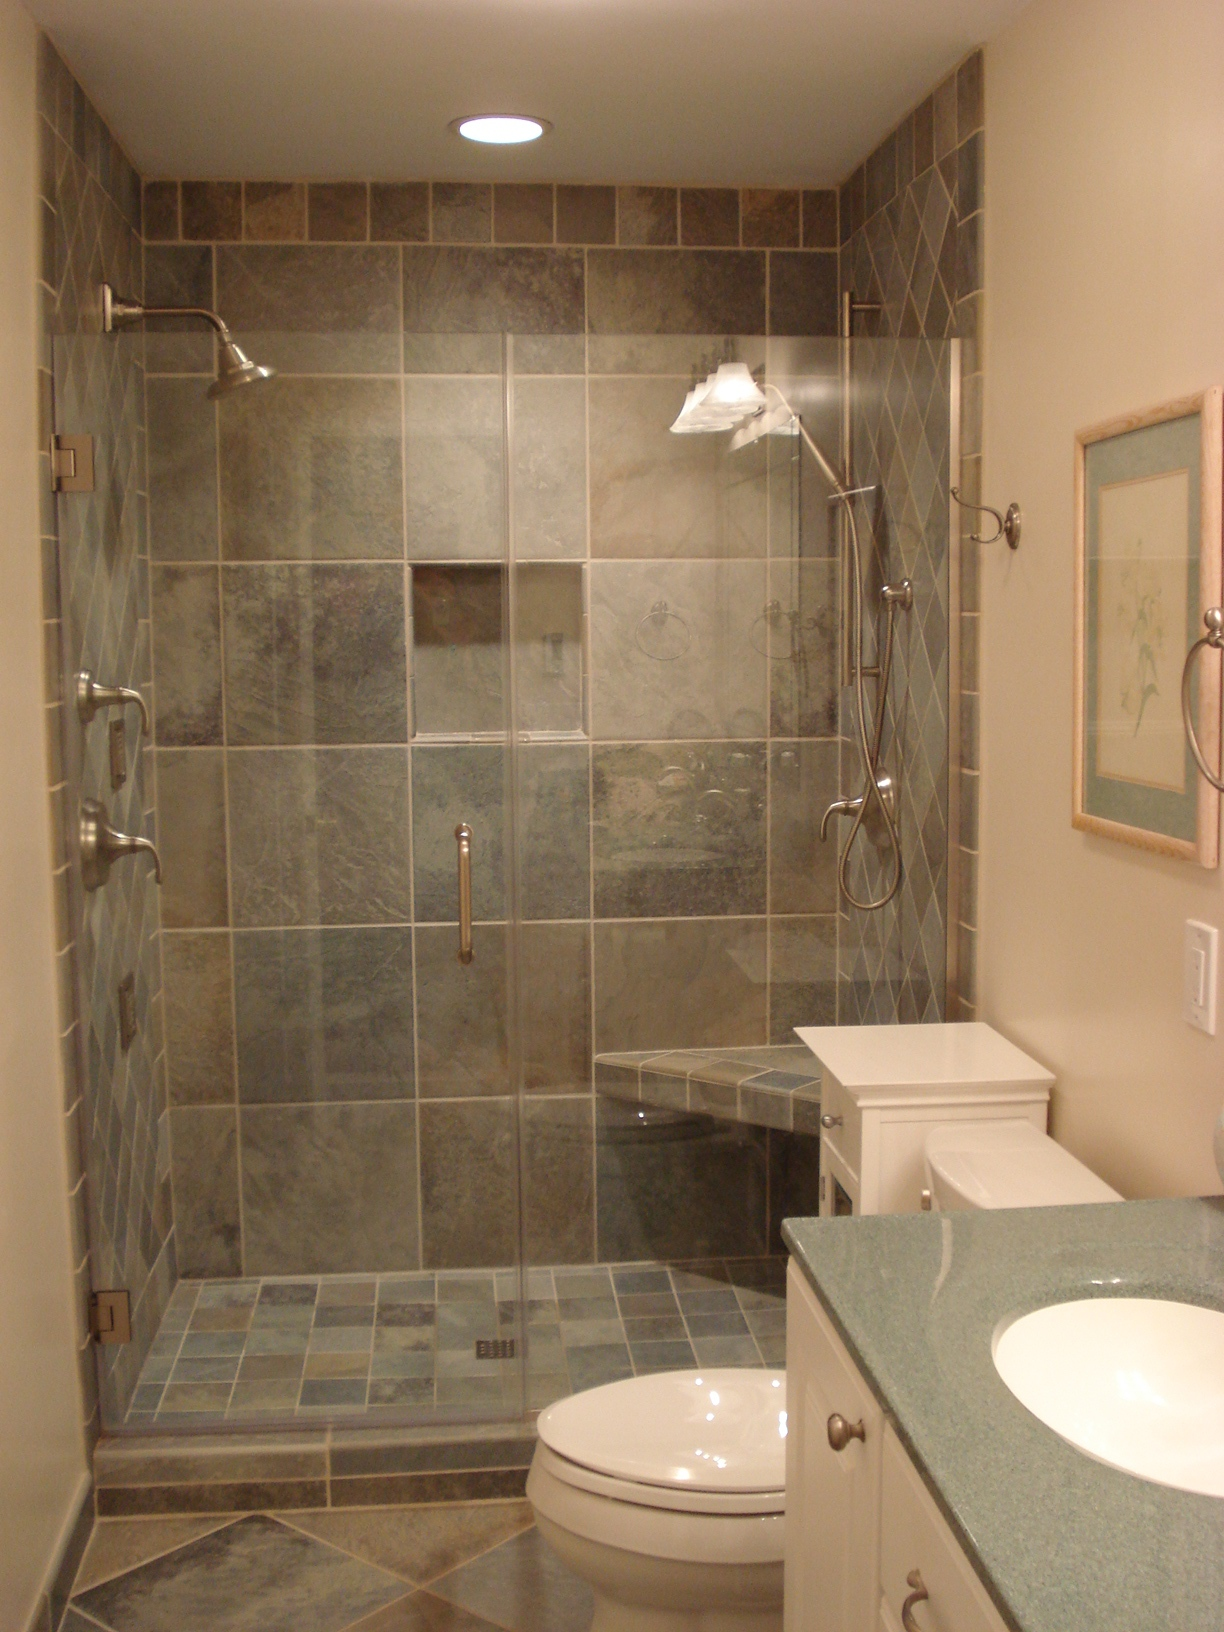 Lifetime design build inc completed projects for Bathroom remodelling bathroom renovations